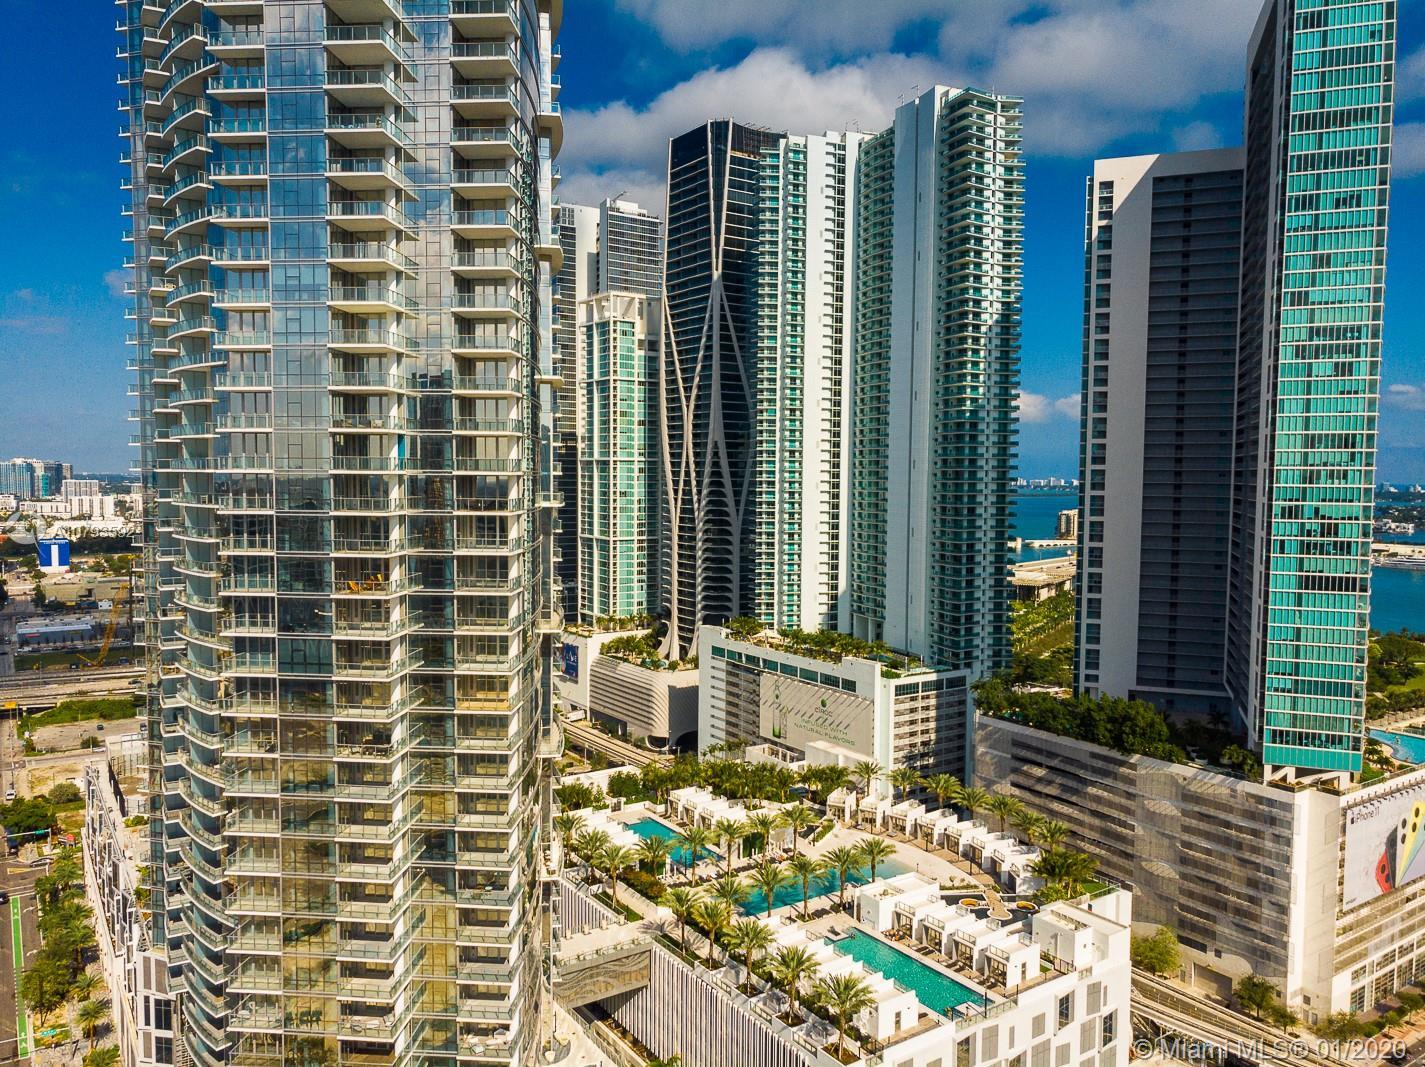 SPACIOUS 1 BDM + LARGE DEN W/ FULL BATHROOM, UNIT FEATURES INCLUDE PRIVATE ELEVATORS, 10 FT CEILINGS